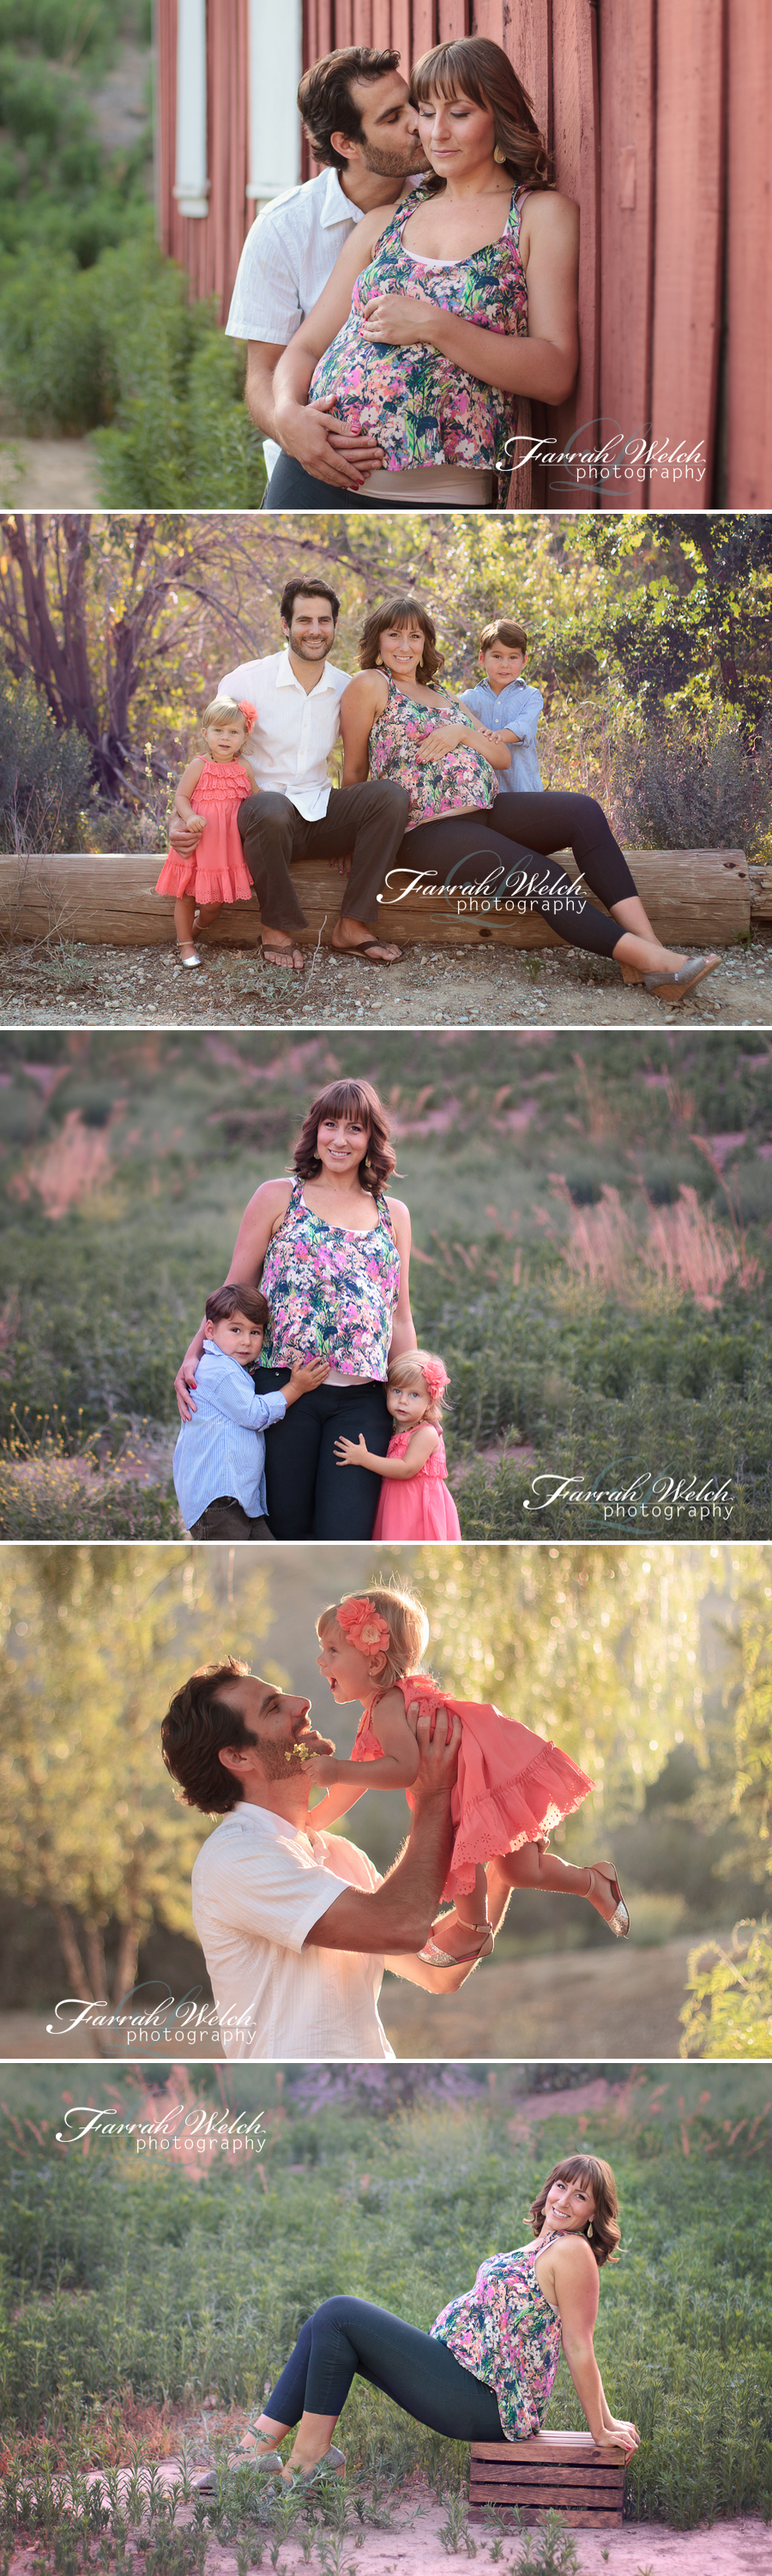 Santa Clarita Maternity Photographer